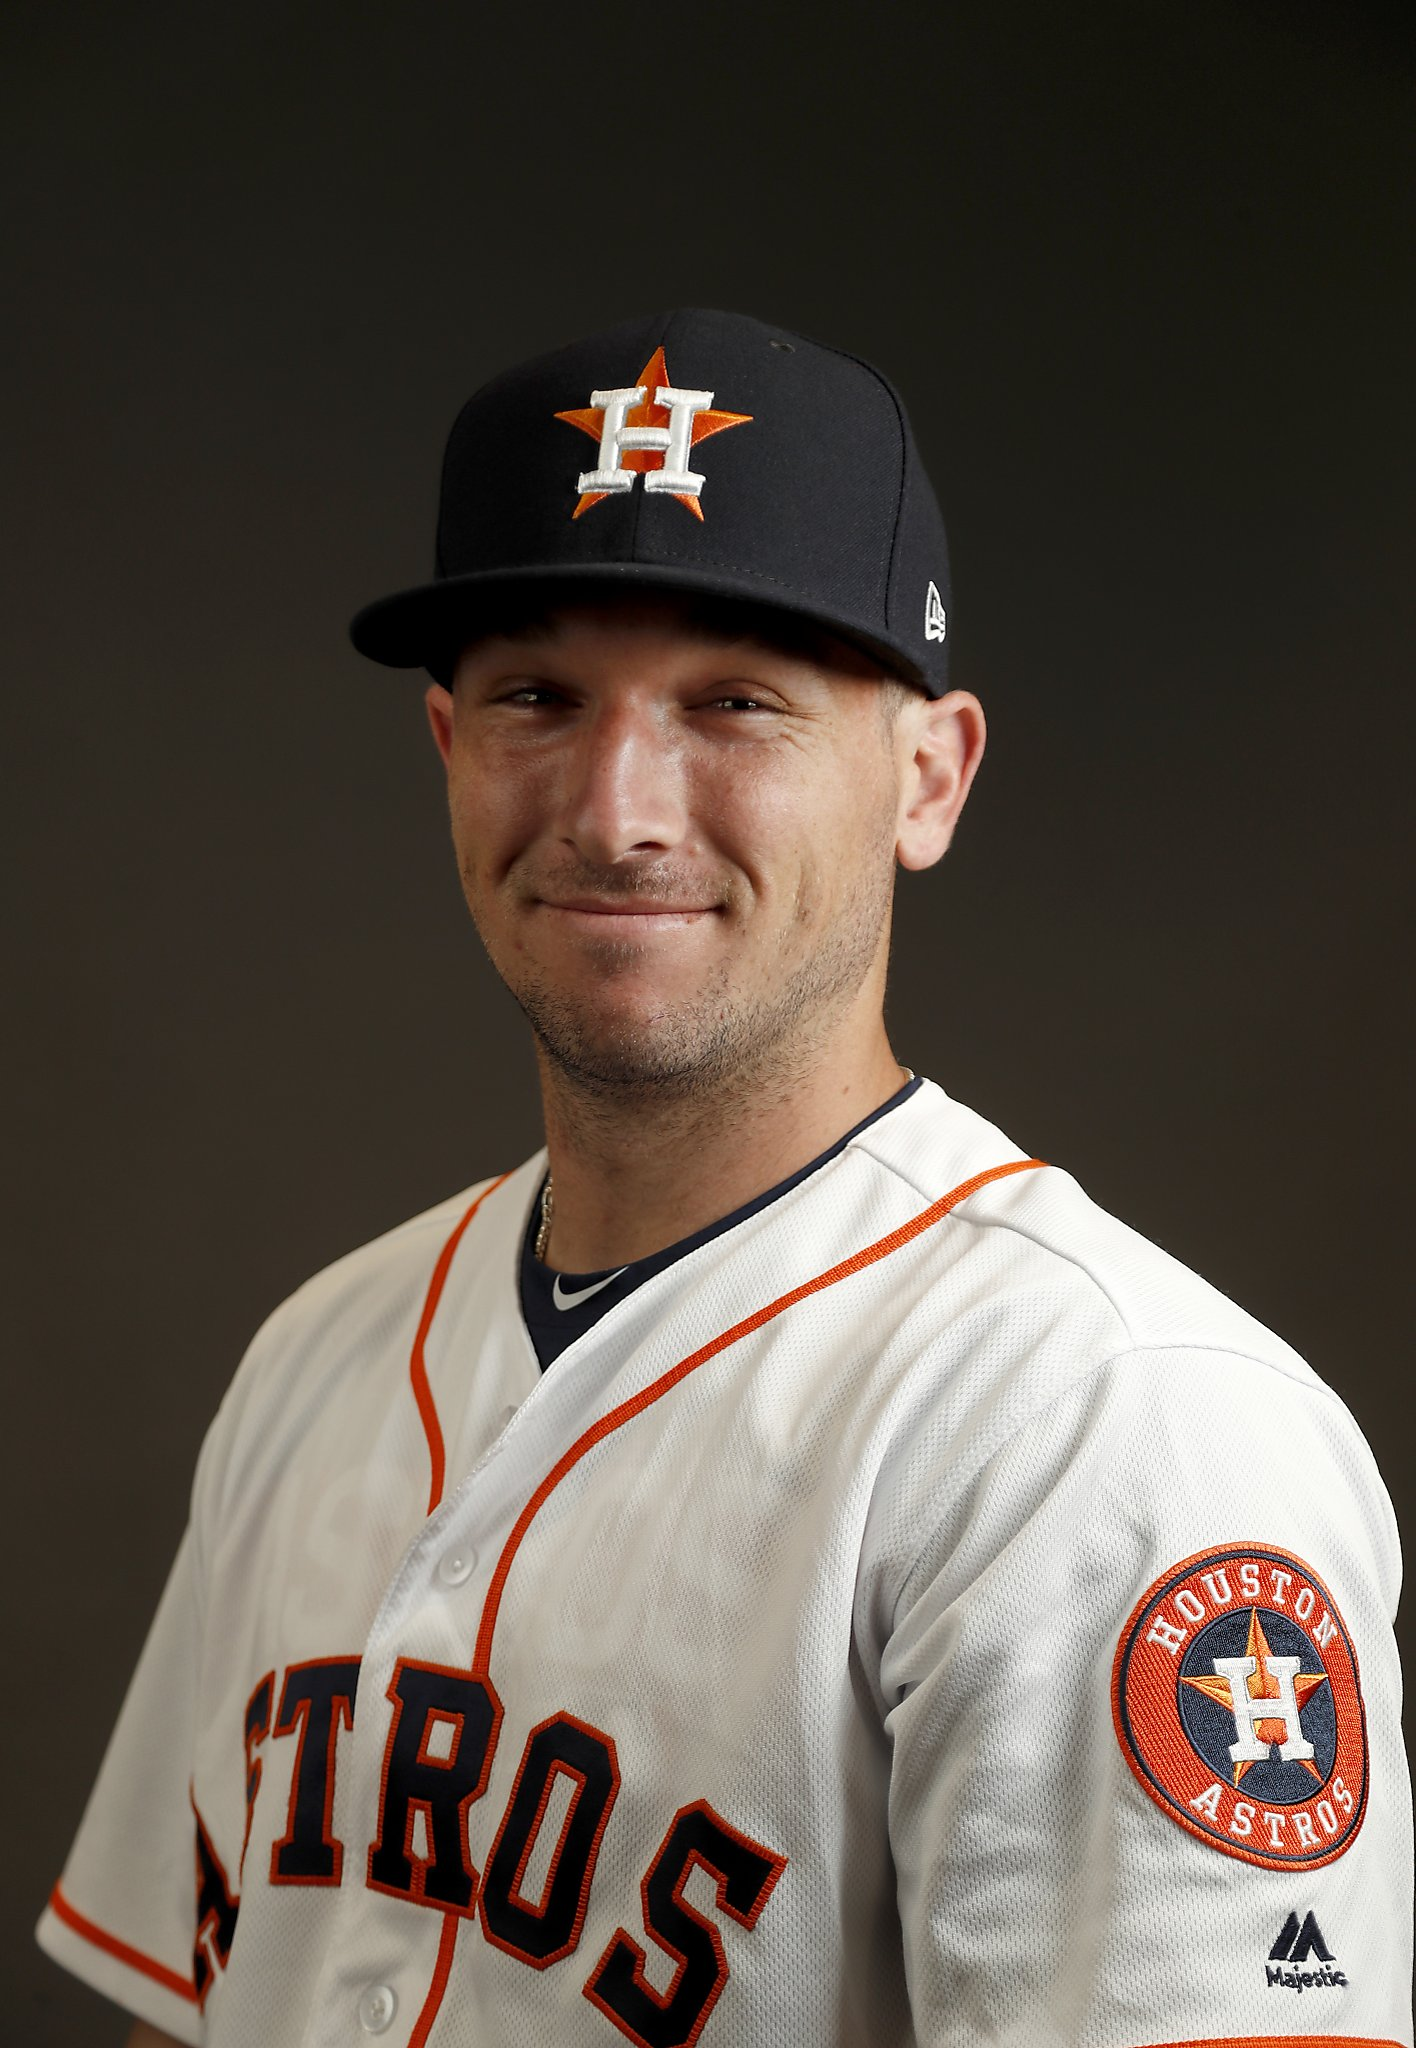 astros star alex bregman launches youtube channel offering